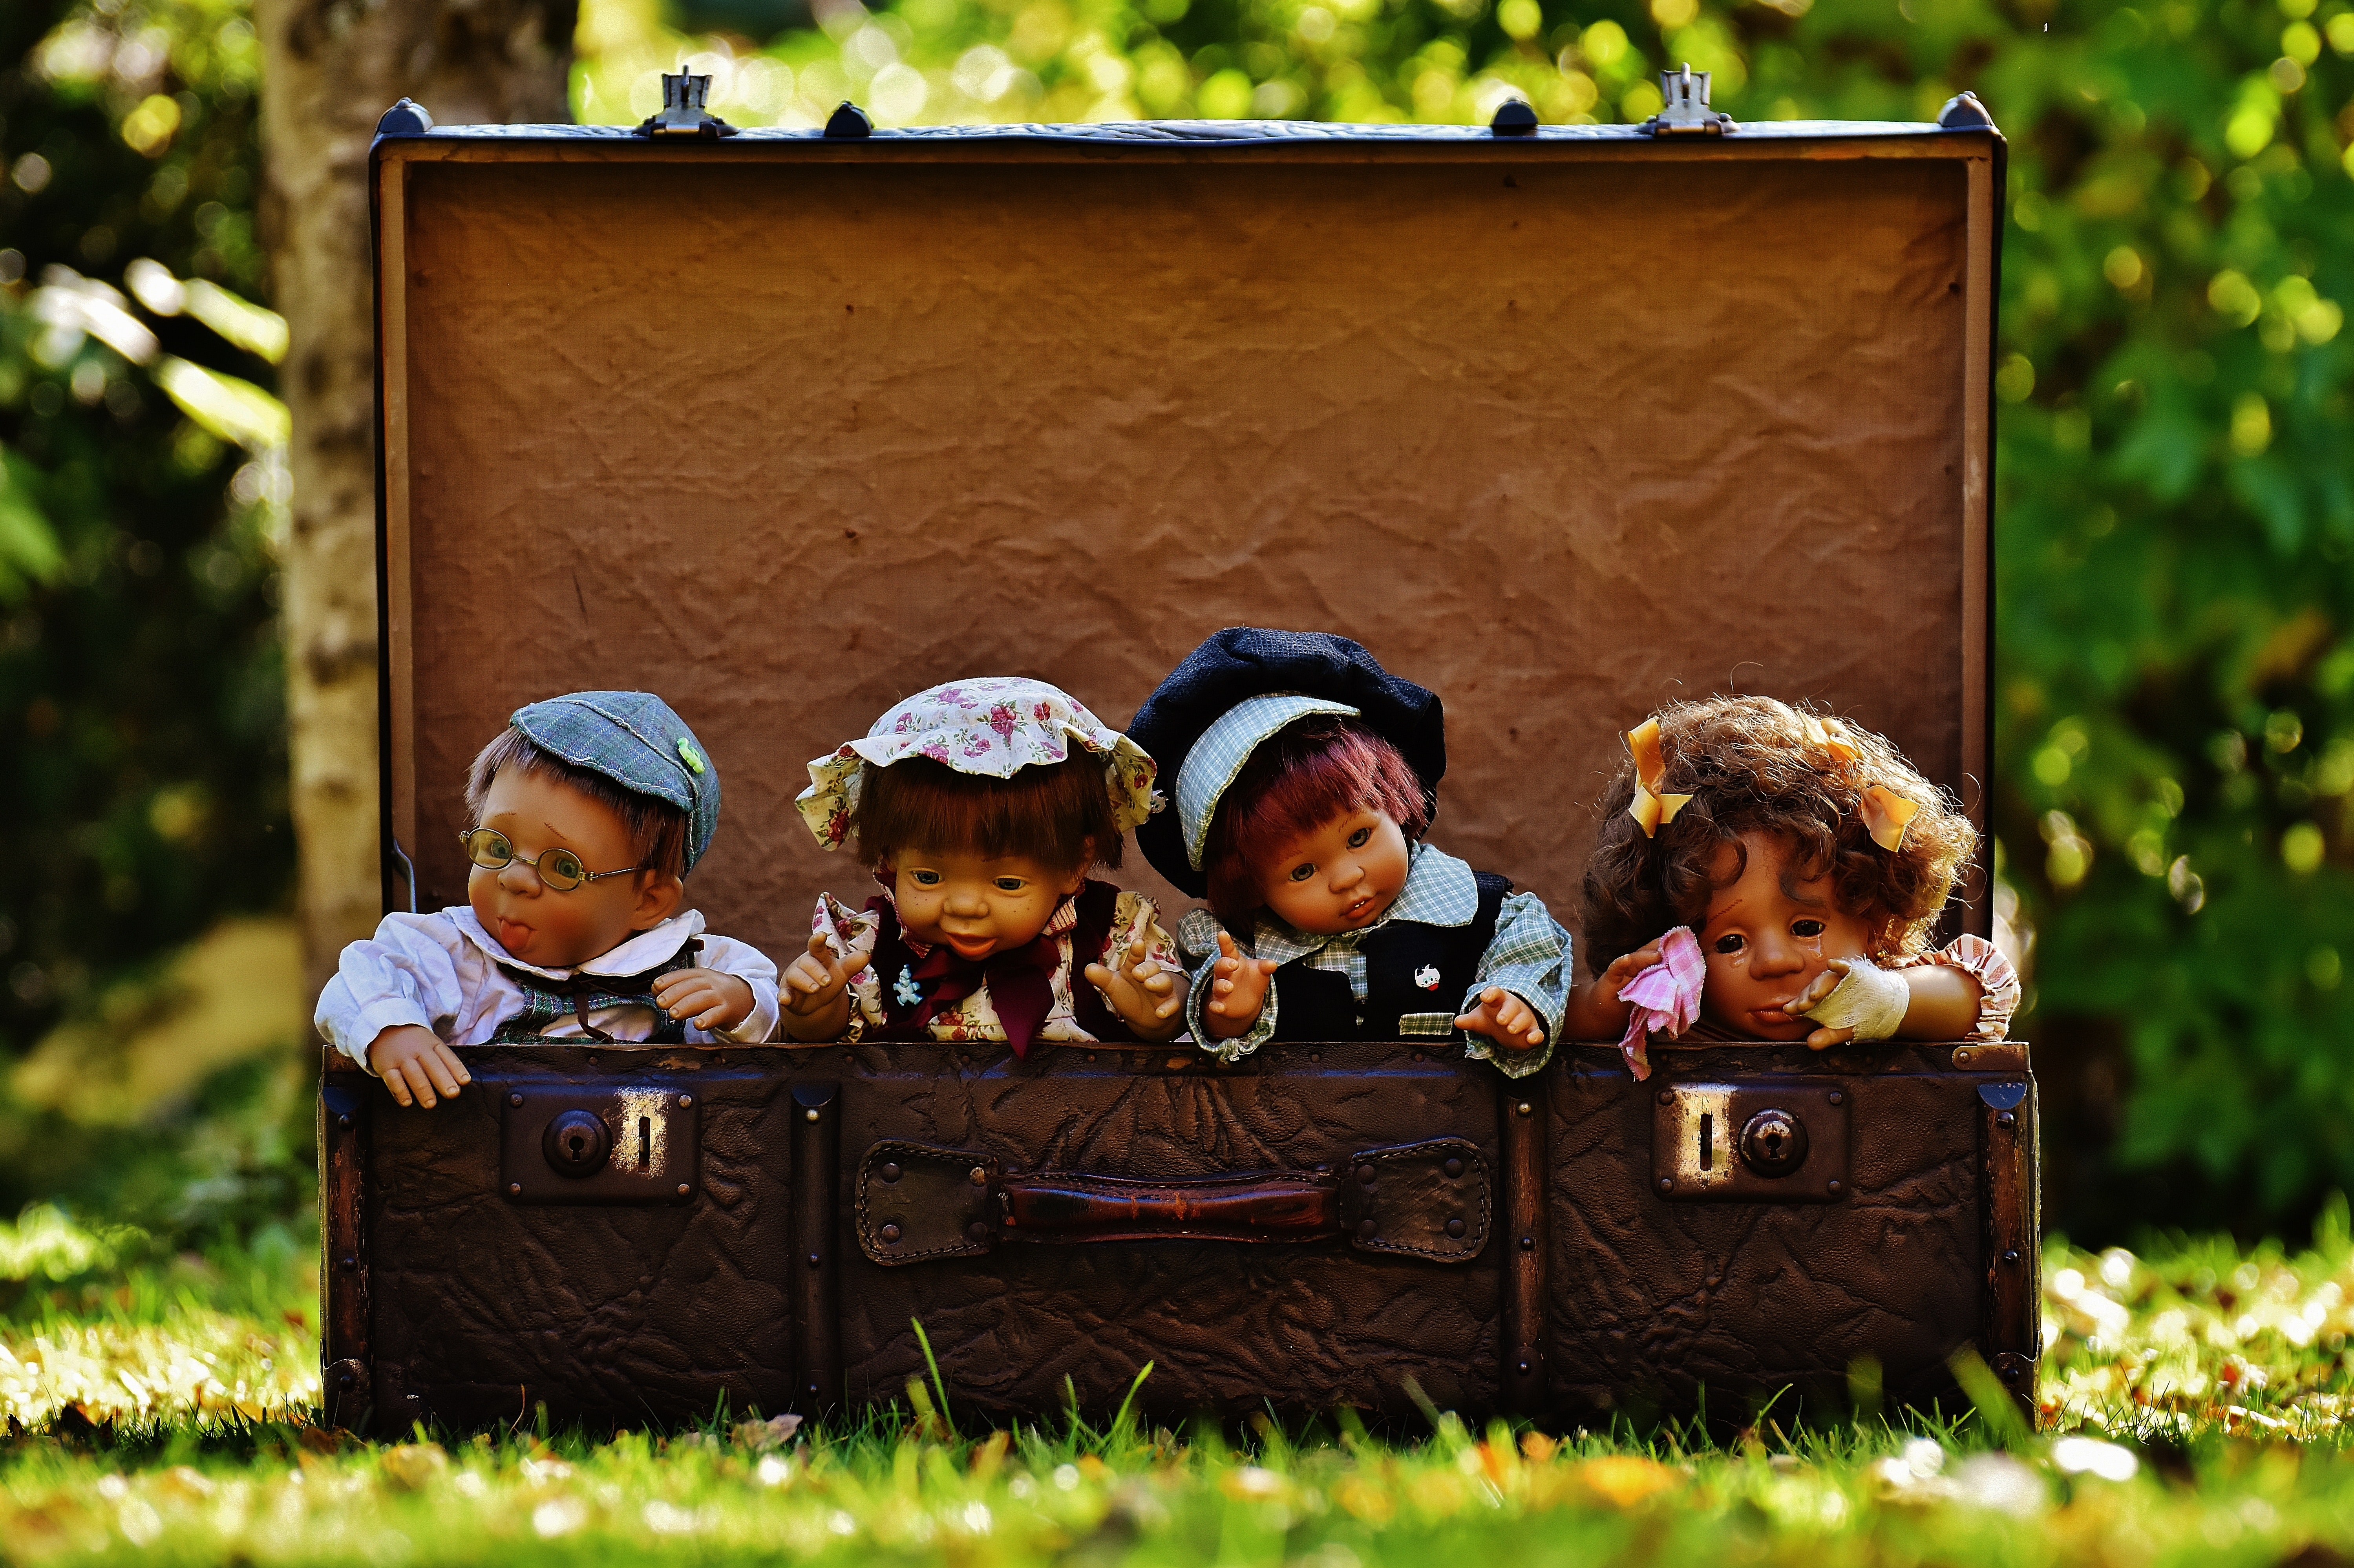 4 Porcelain Dolls in Brown Rectangular Box, Adorable, Outdoors, Junk, Kid, HQ Photo